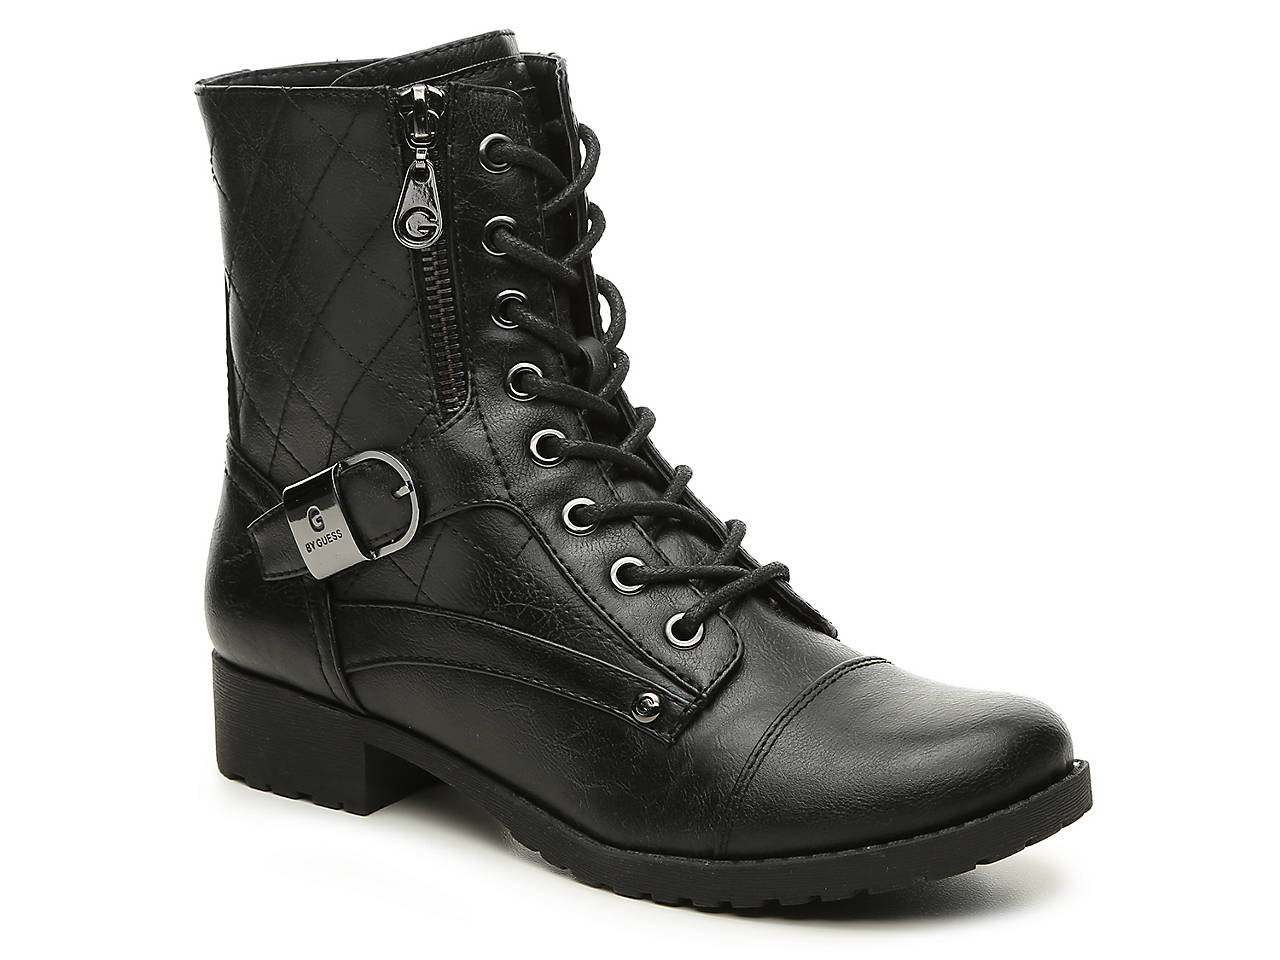 G By Guess Shoes Women